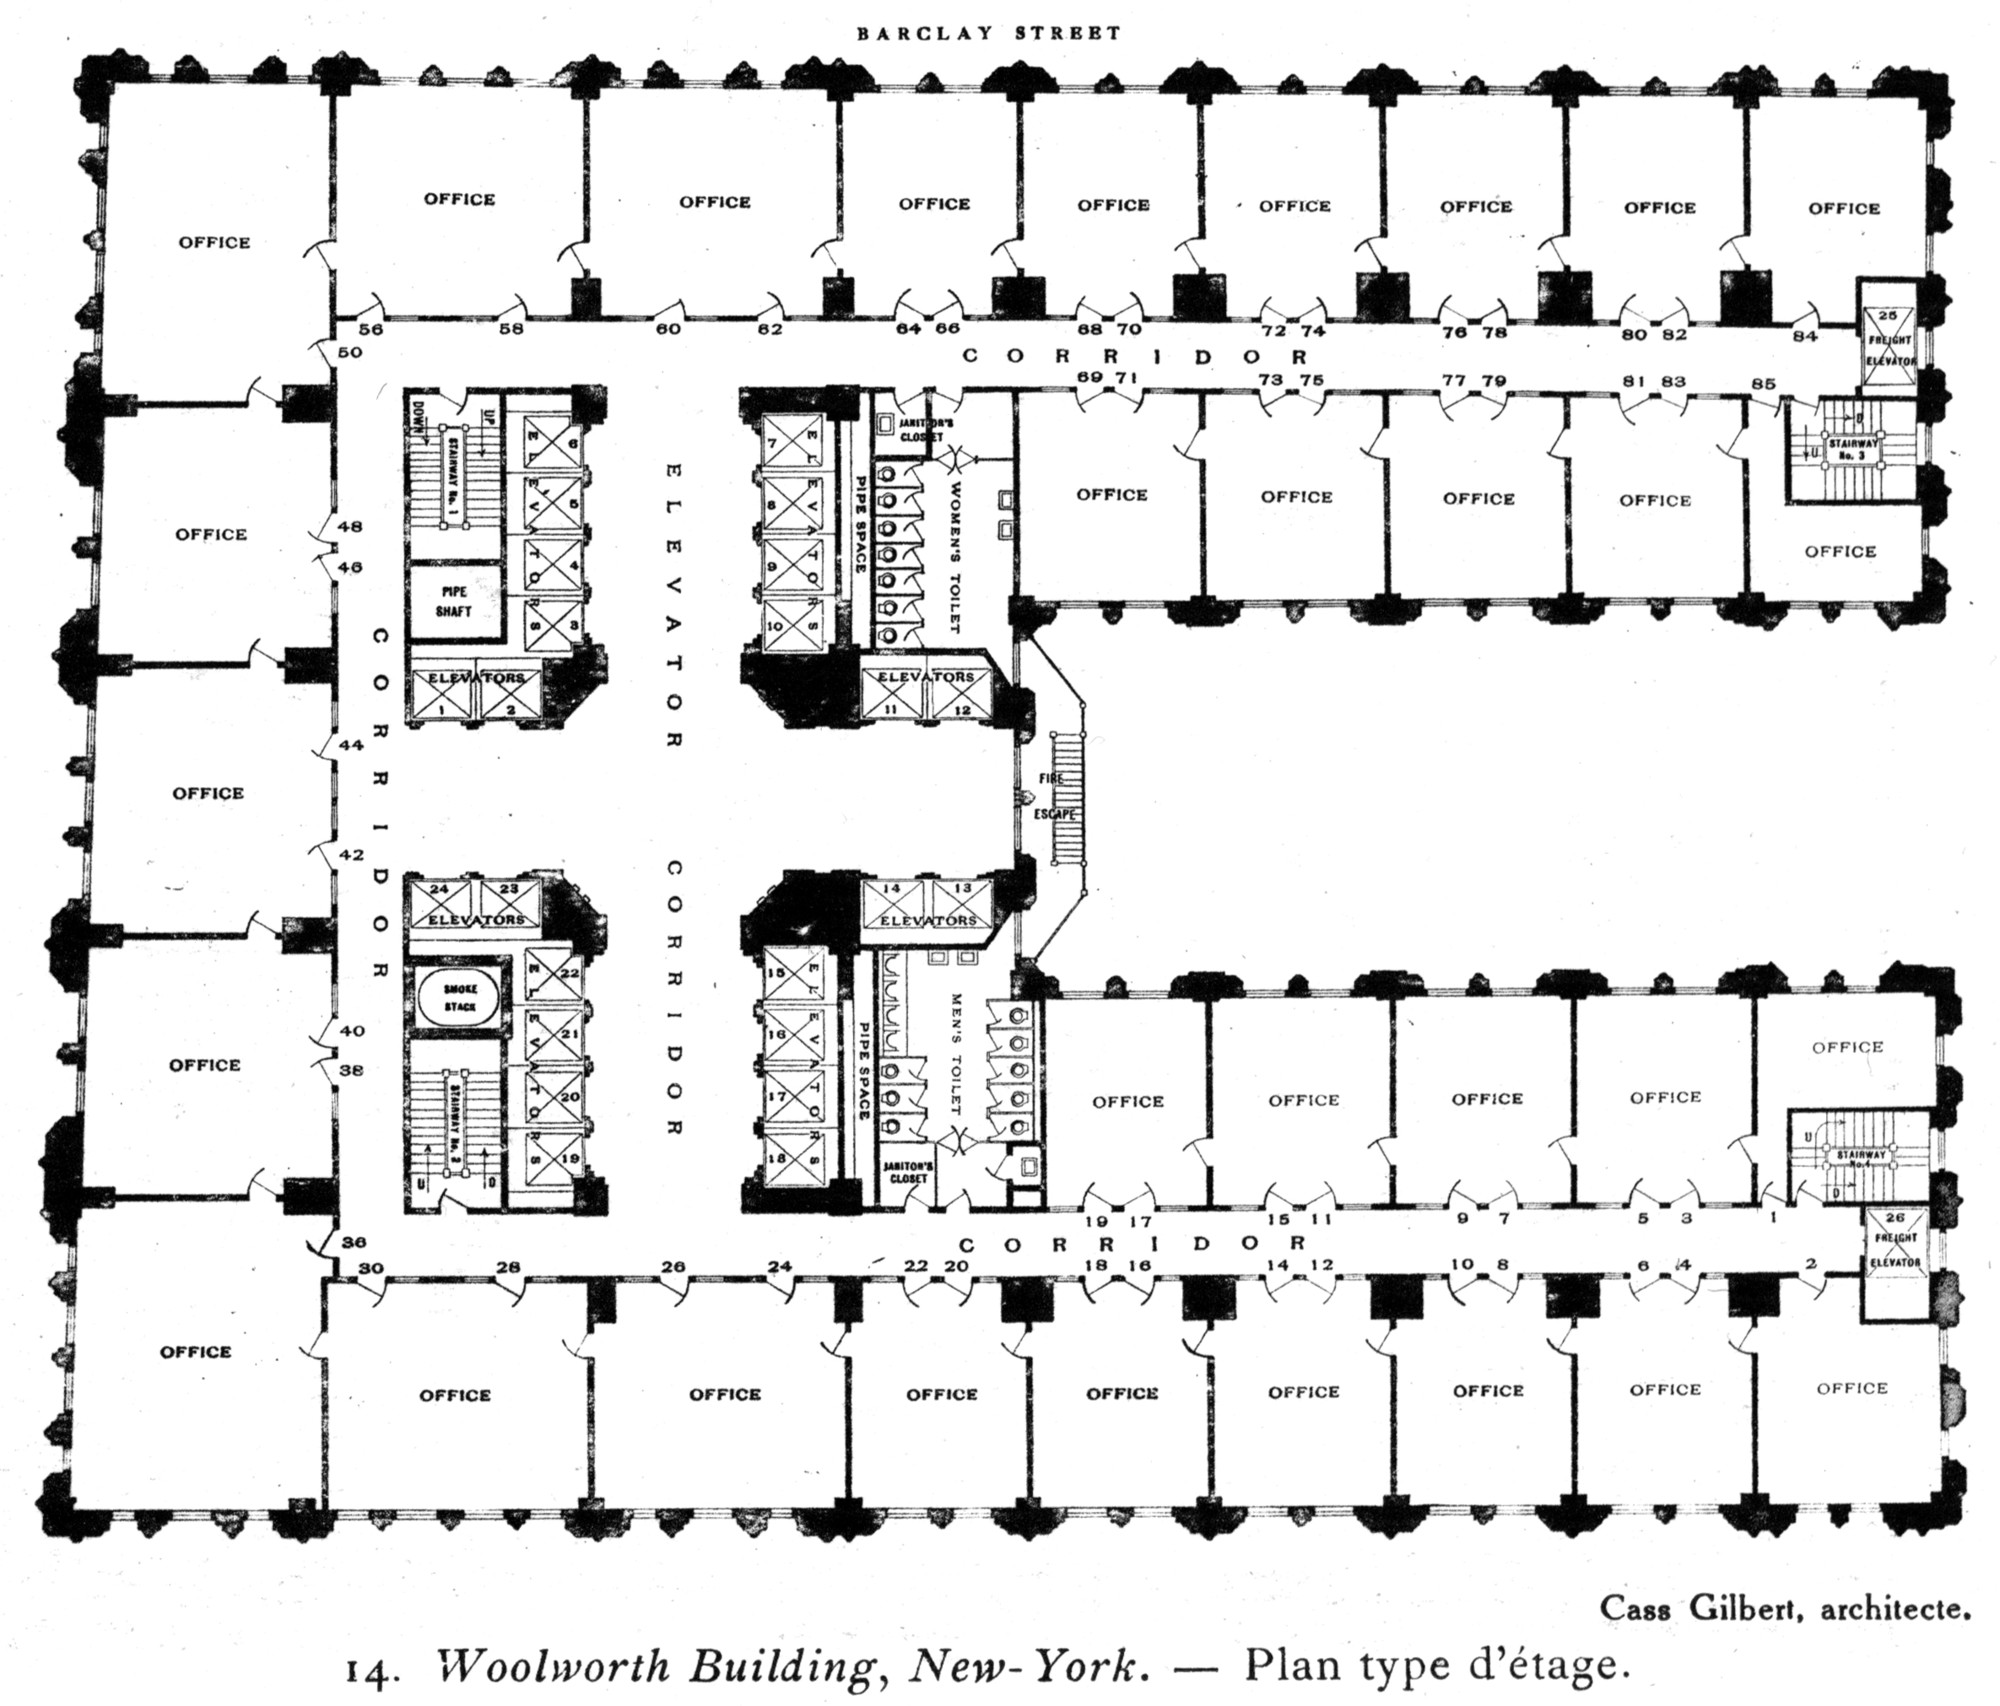 Floor Plan Case Study moreover Floor Plans as well virgobc as well Light likewise Floor Plans. on office layout floor plan